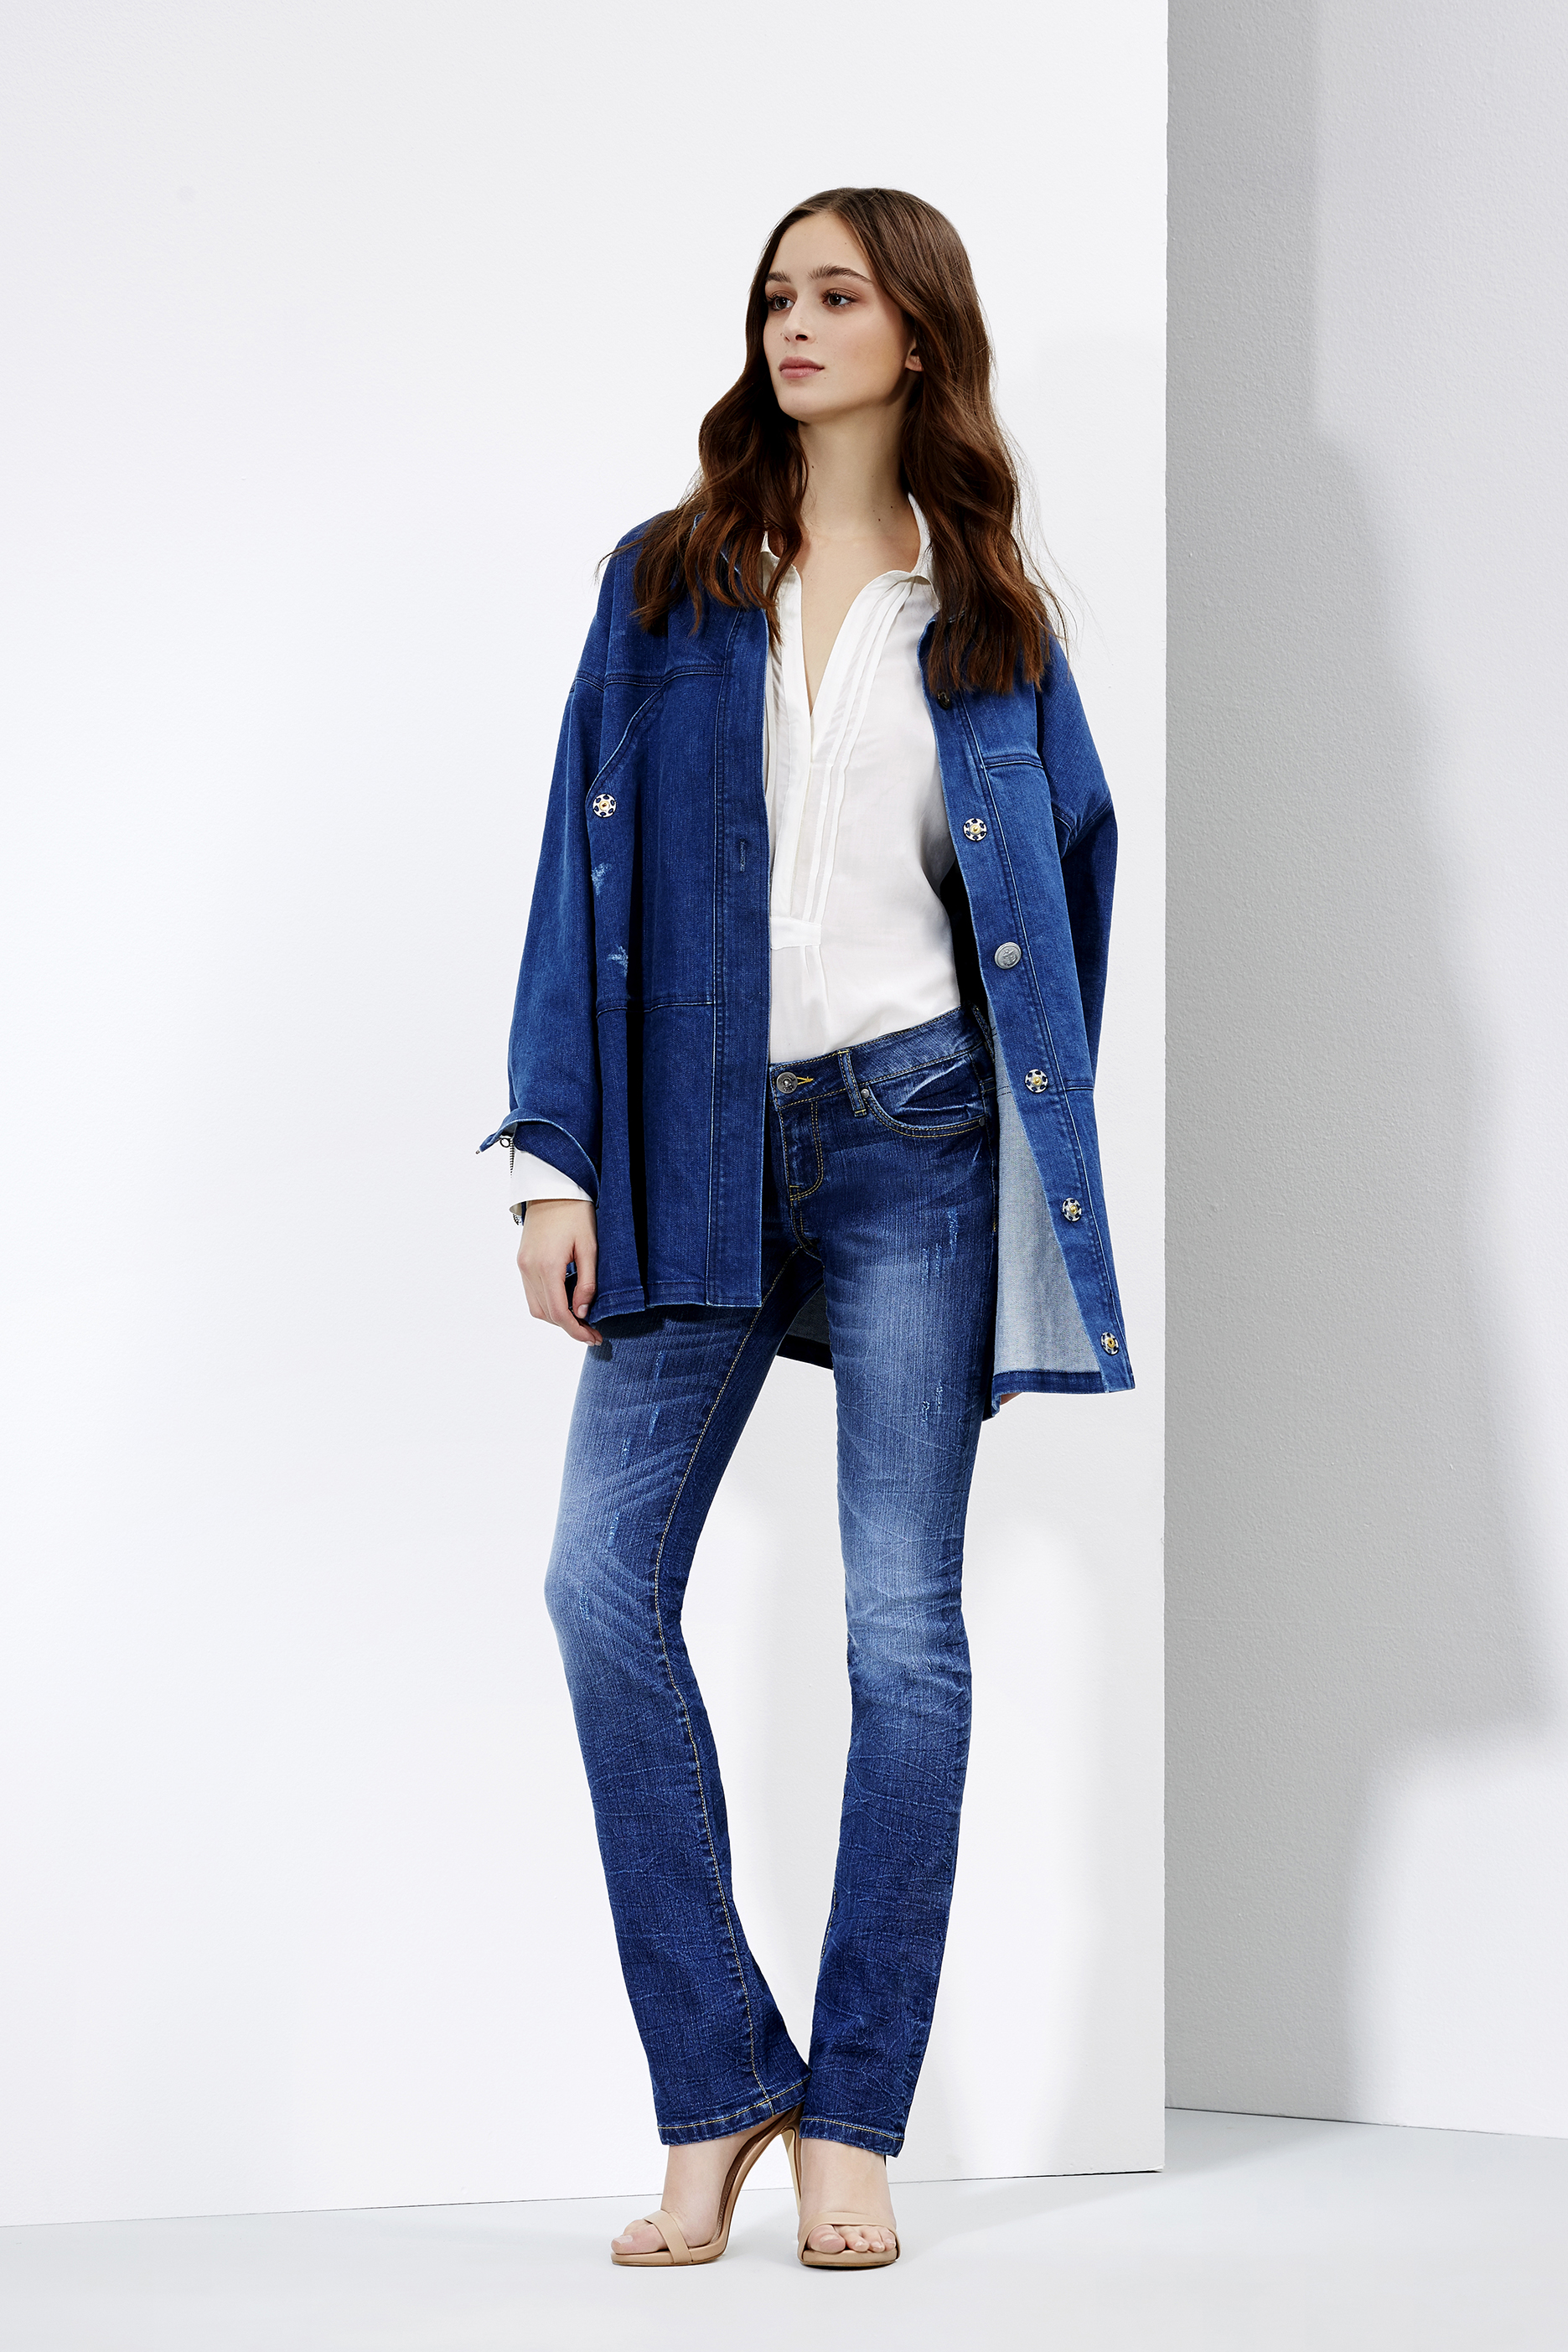 Bootcut jeans and blouse with denim jacket